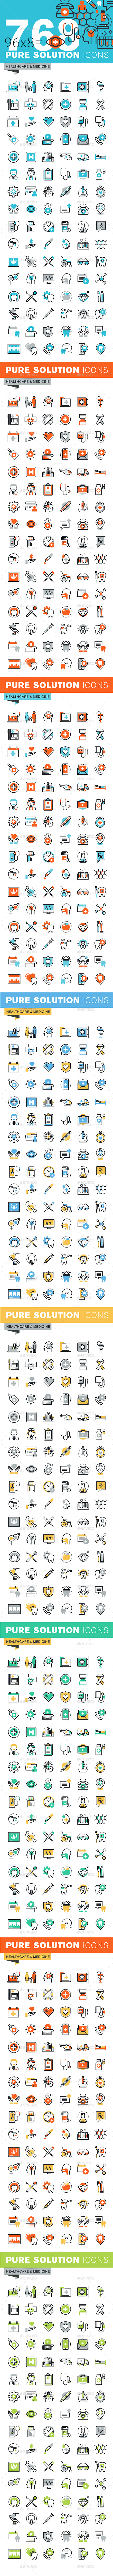 Set of Thin Line Flat Design Icons of Healthcare and Medicine - Icons